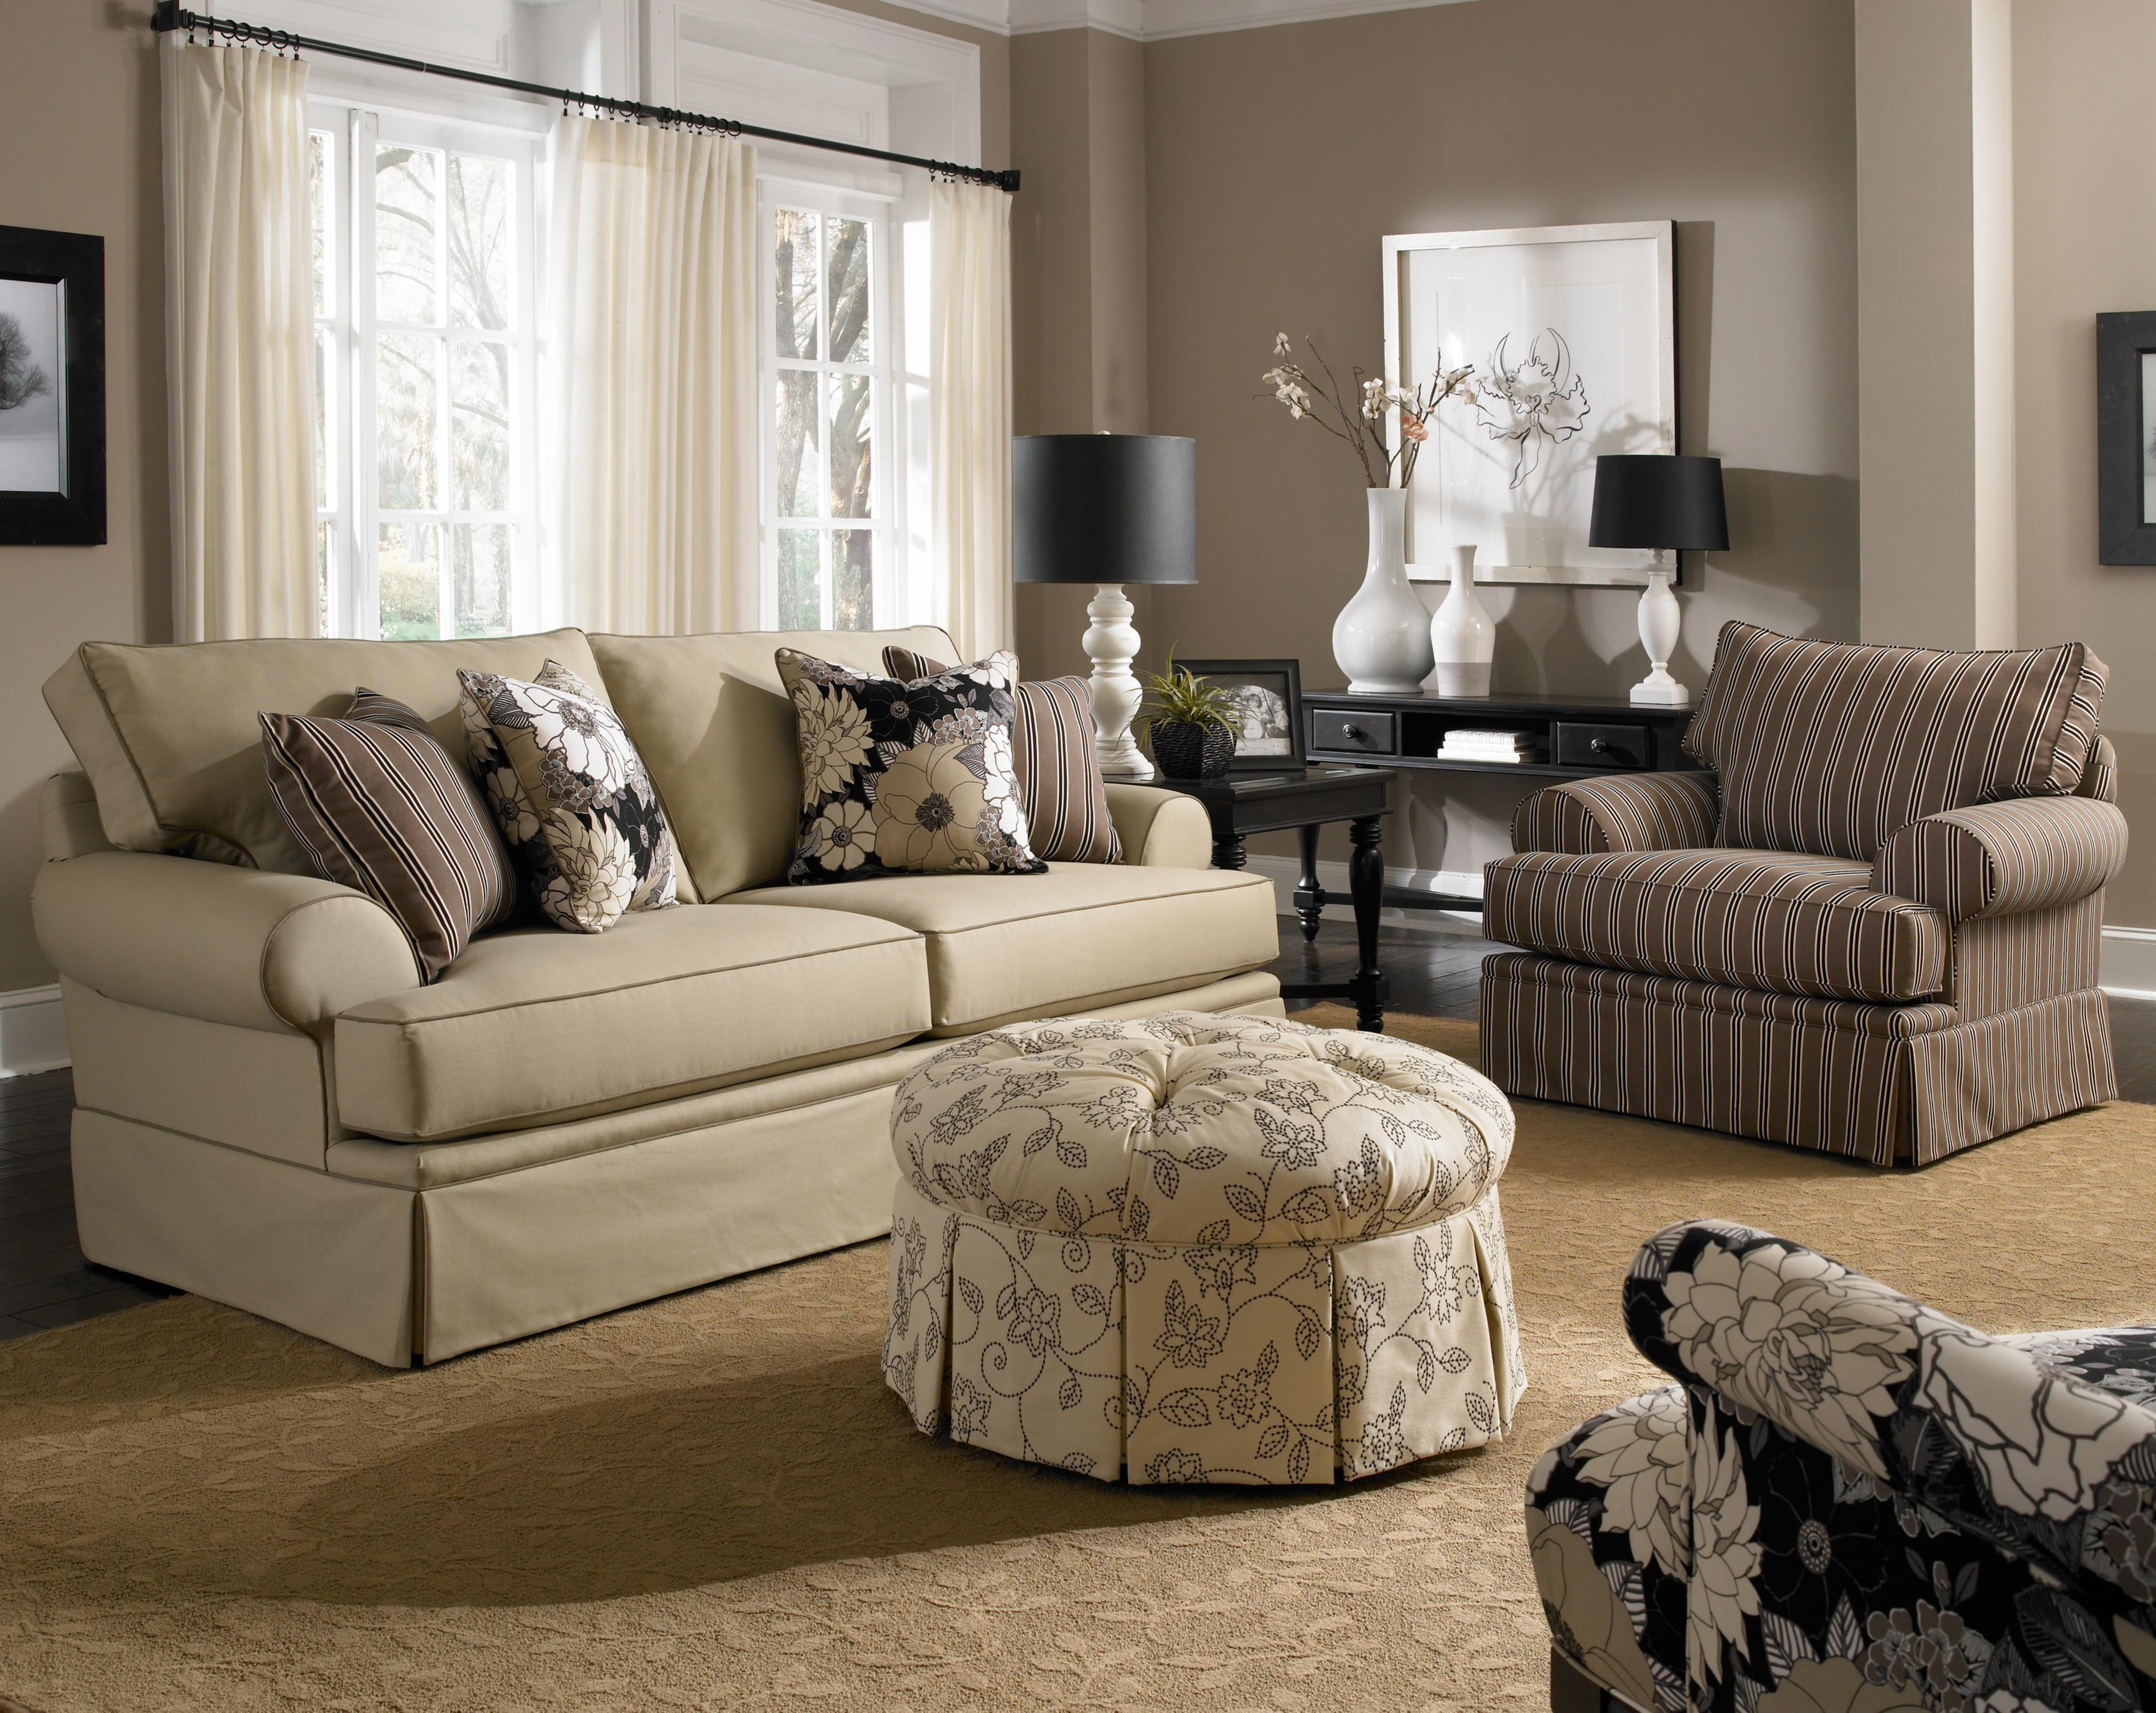 Broyhill furniture emily 6262 7 queen goodnight sleeper for Broyhill furniture